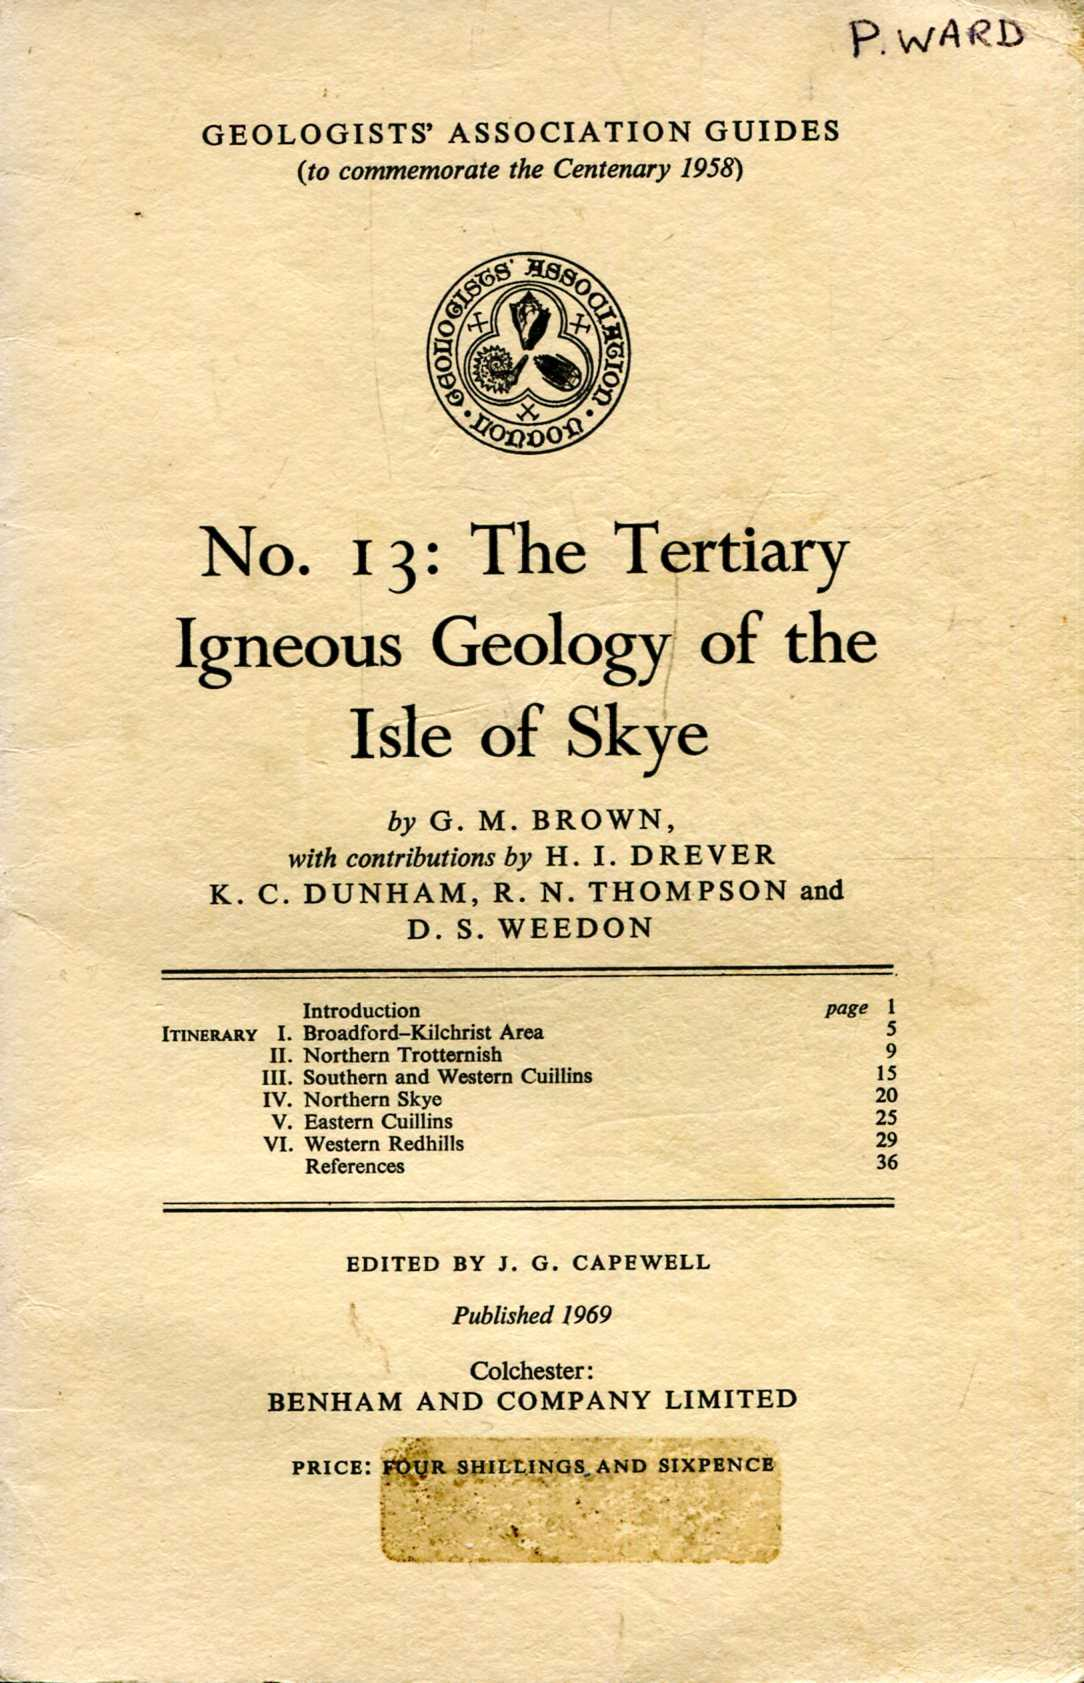 Image for Geologists' Association Guides No 13 : The Tertiary Igneous Geology of the Isle of Skye